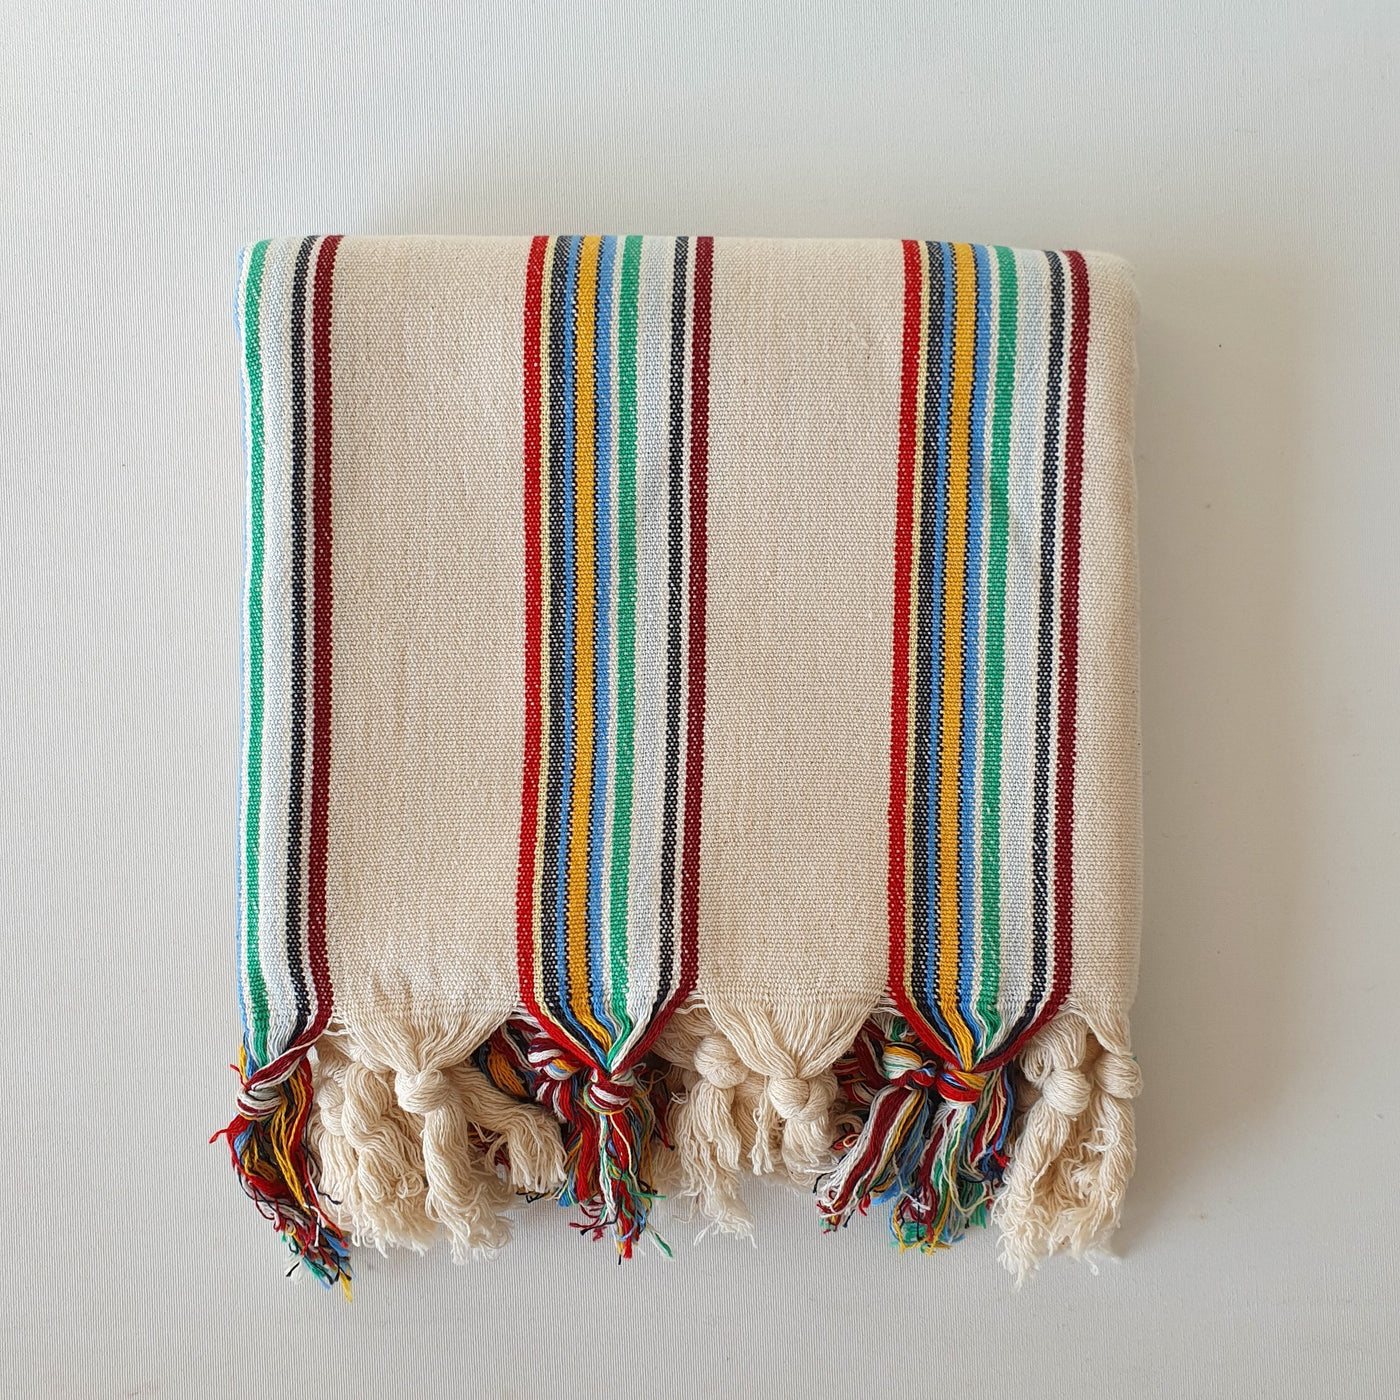 Turkish Towel No. 5